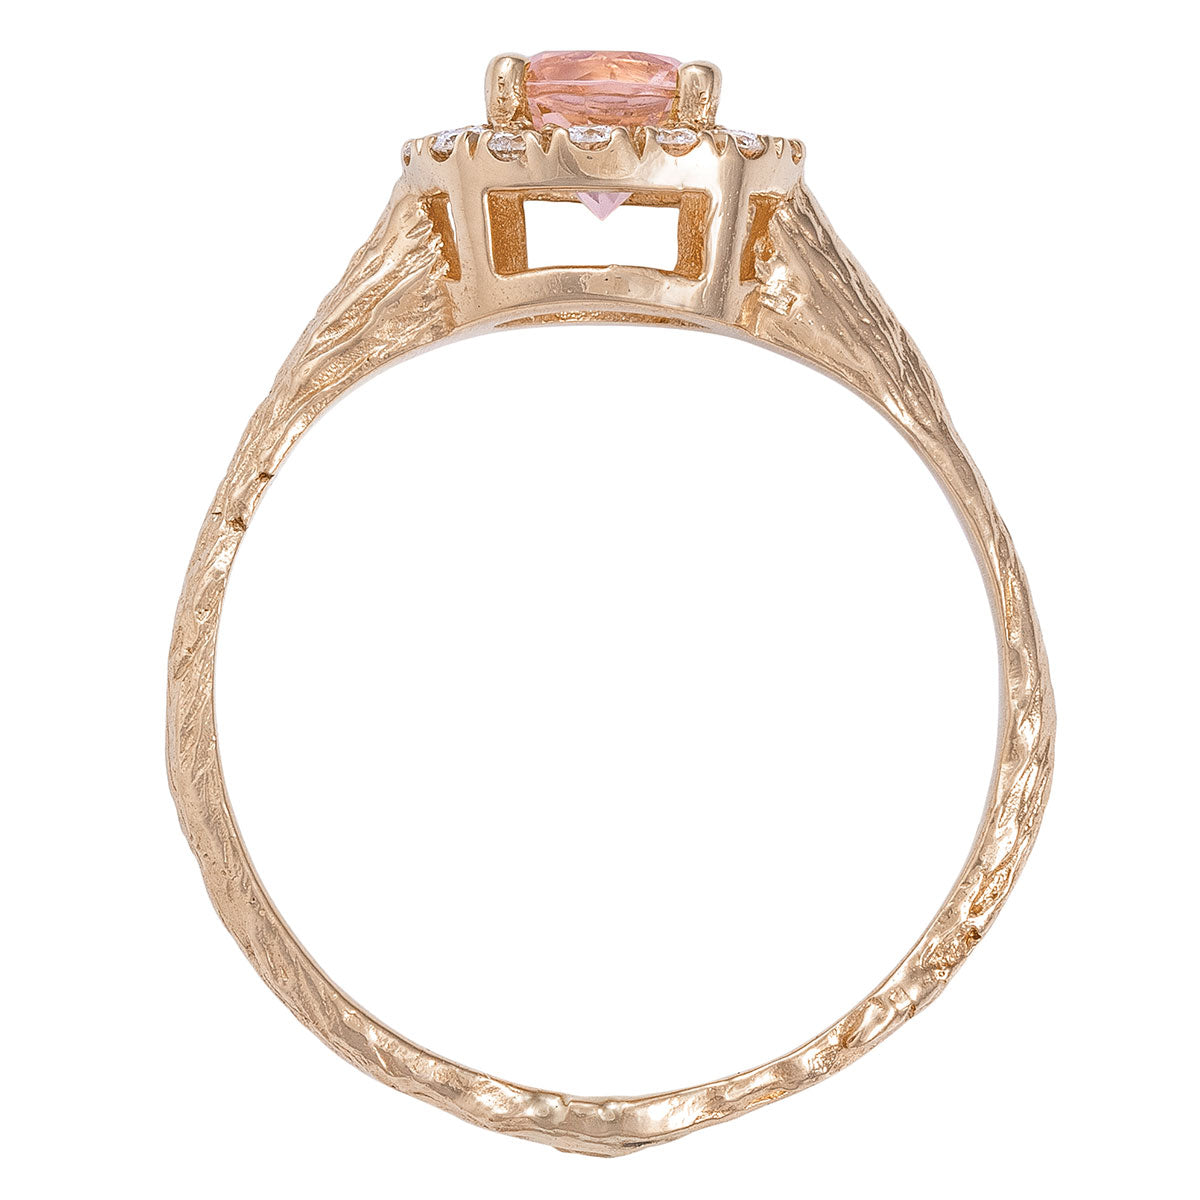 Chupi - Morganite & Diamond Halo Engagement Ring - Solid Rose Gold - Half Carat Round Queen of Hearts